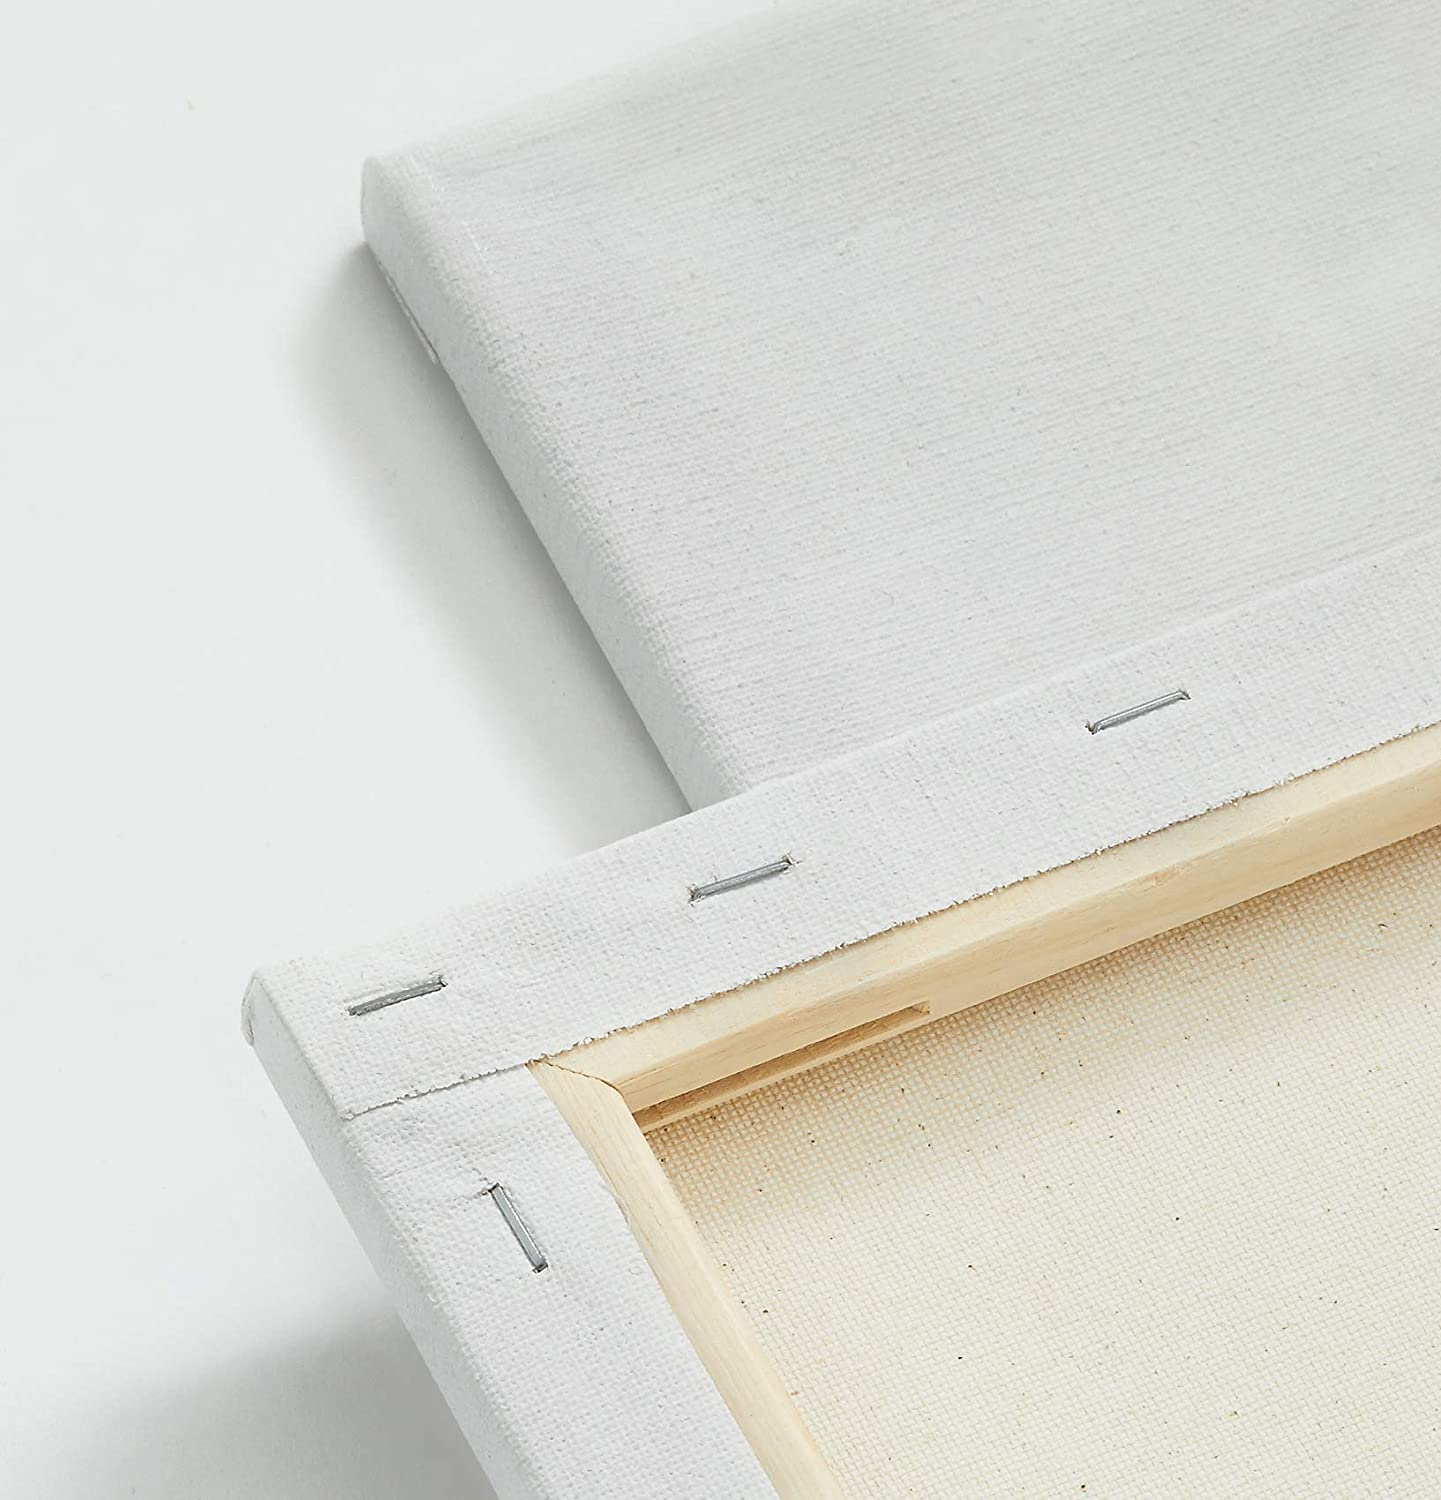 miniature 35 - Americanflat Stretched Canvas in White 100% Cotton Wooden Frames & Acid Free